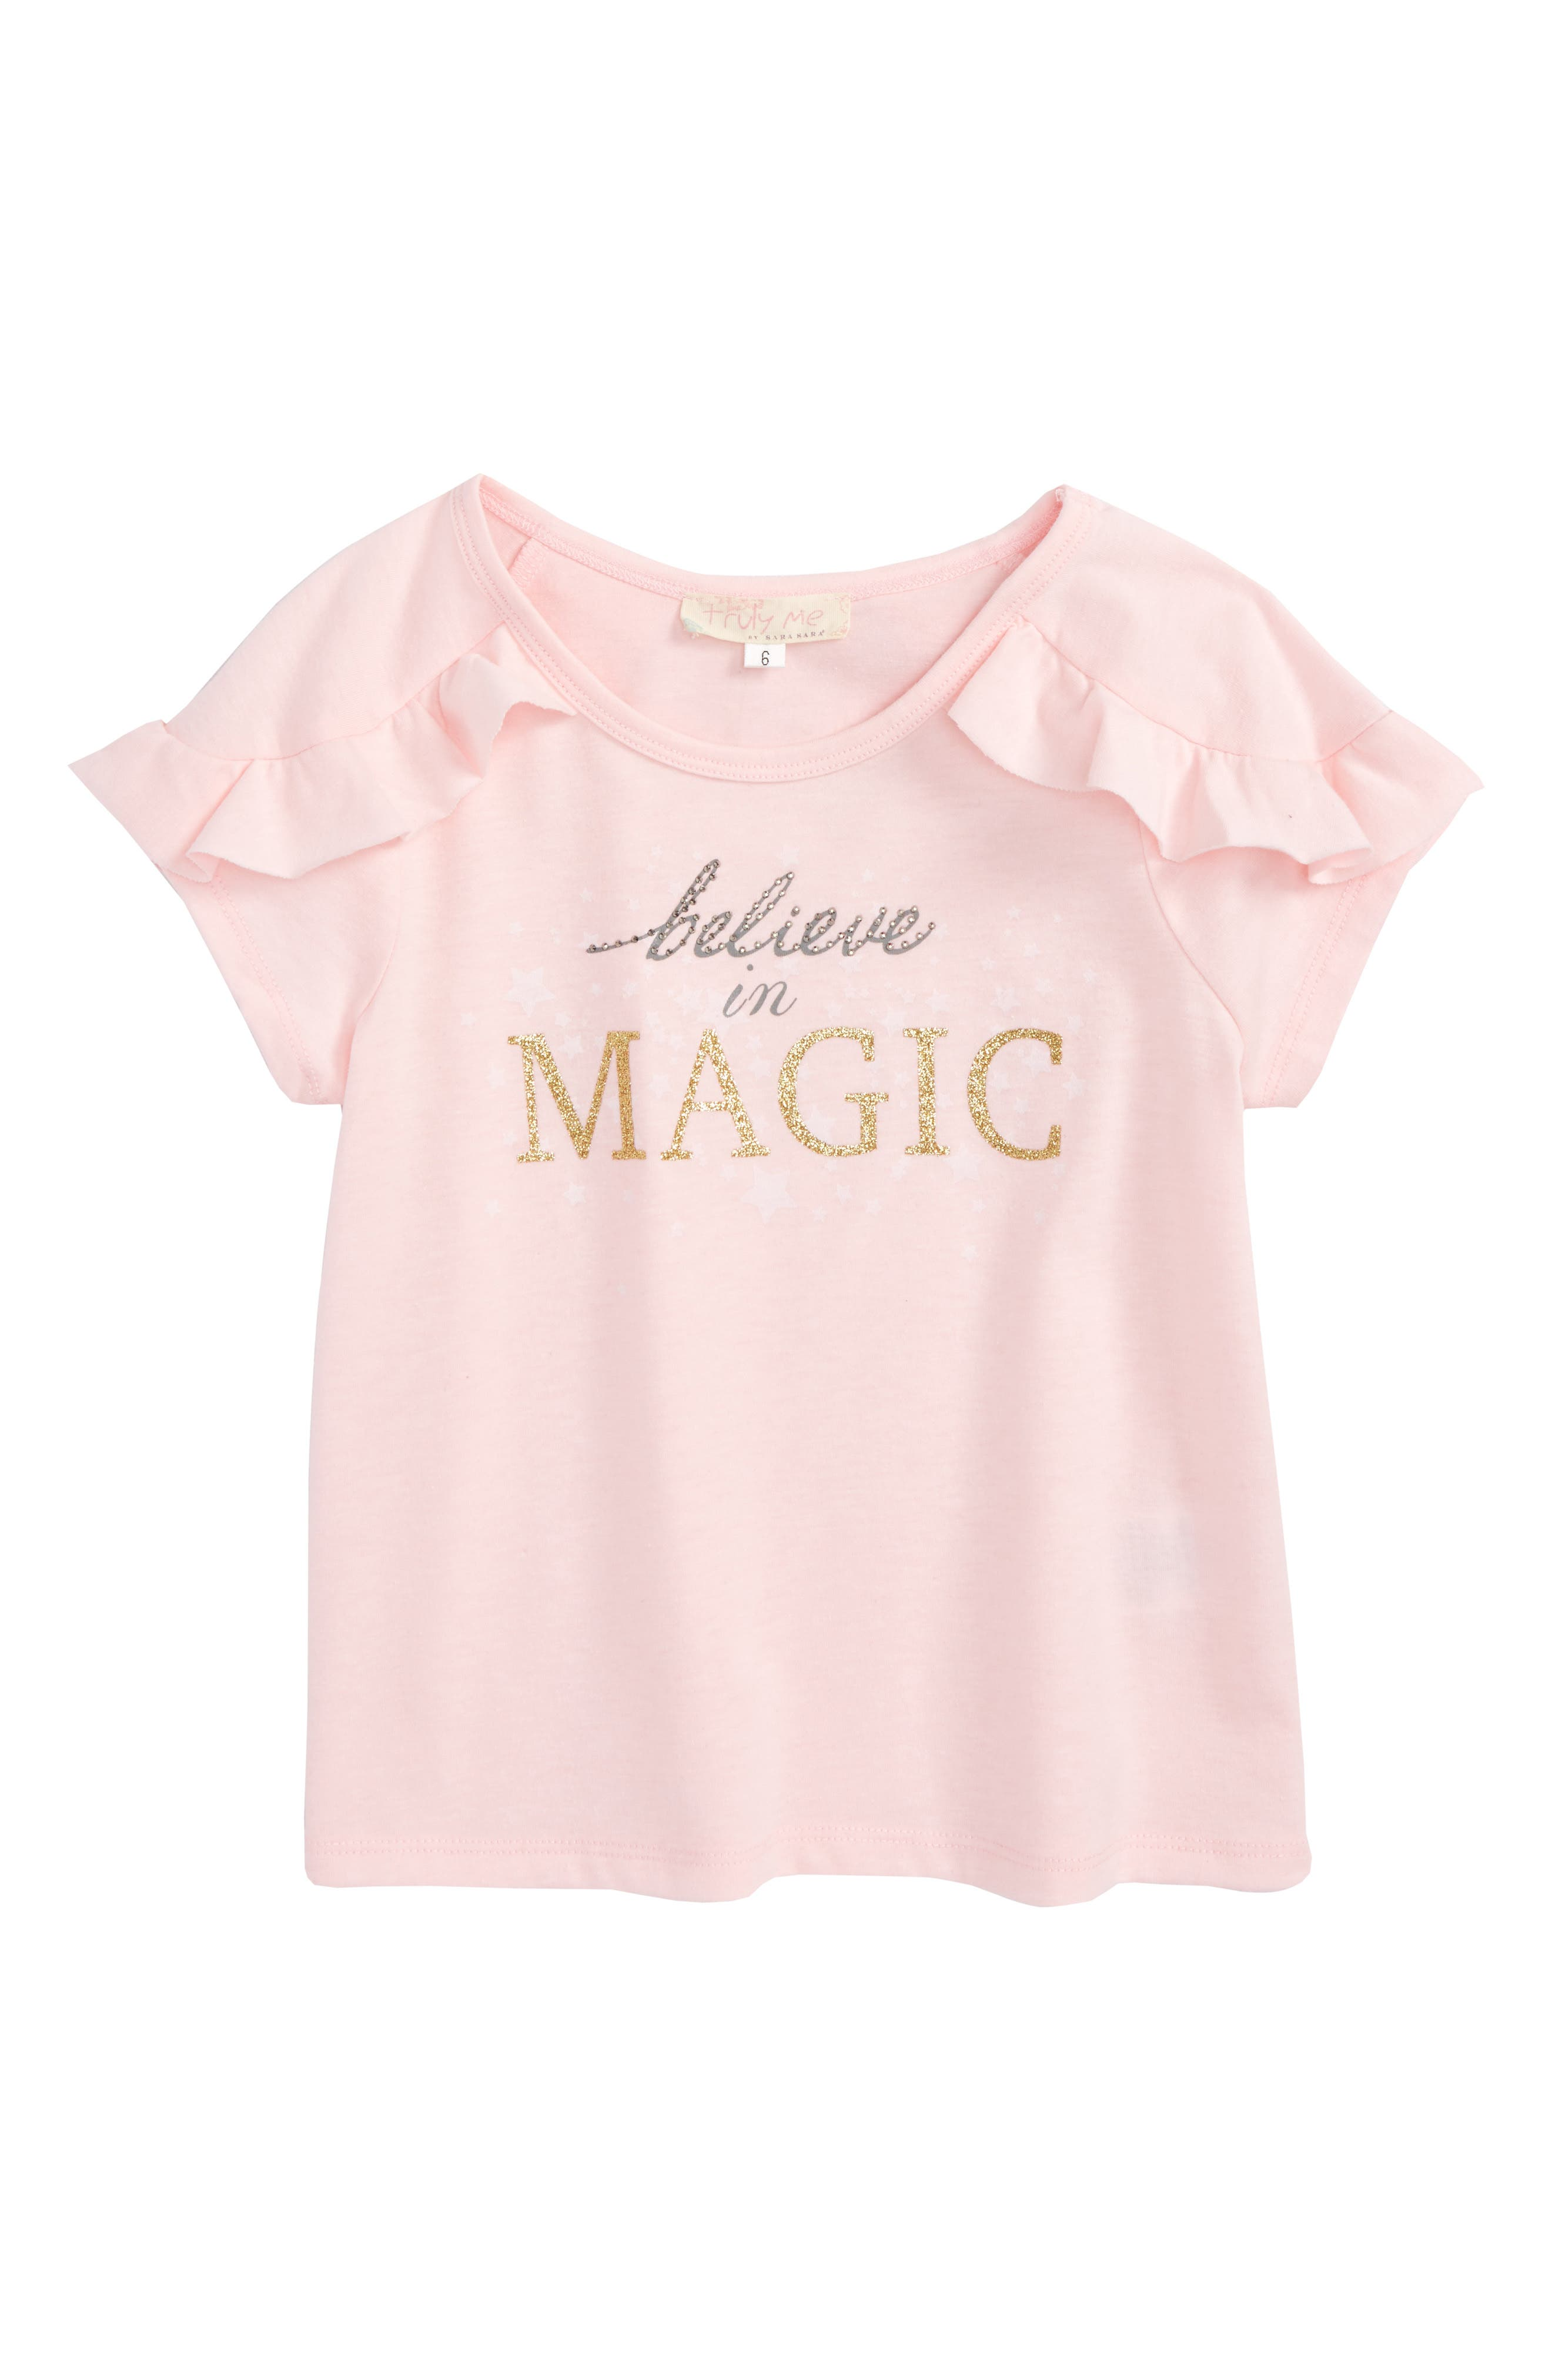 Main Image - Truly Me Believe In Magic Graphic Tee (Toddler Girls & Little Girls)